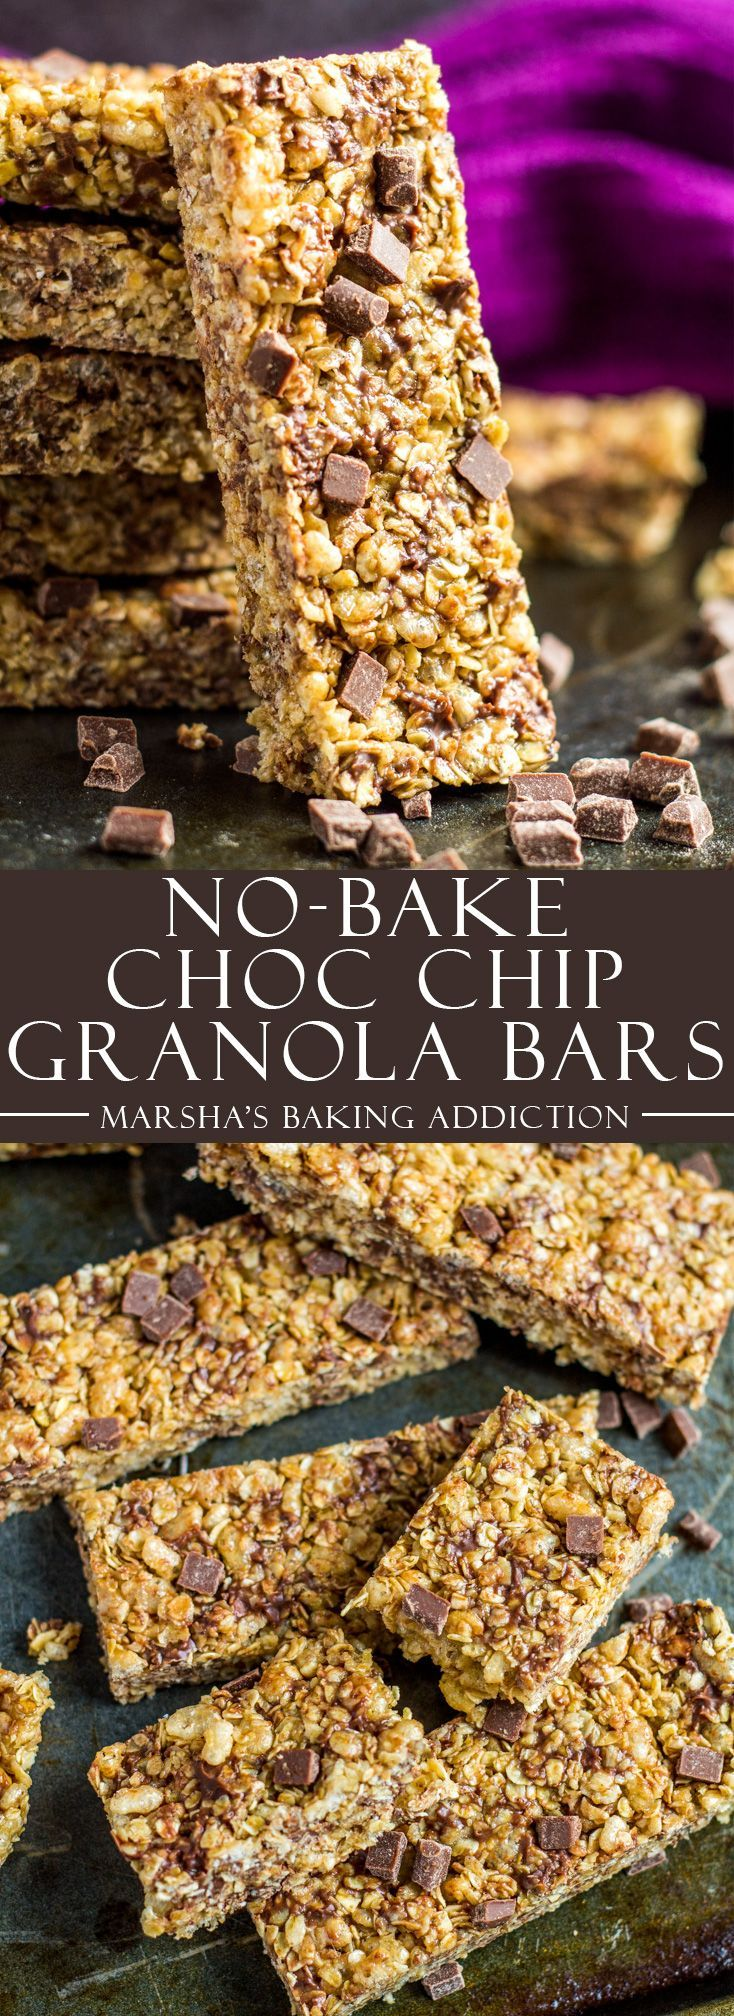 No-Bake Chocolate Chip Granola Bars | marshasbakingaddiction.com @marshasbakeblog